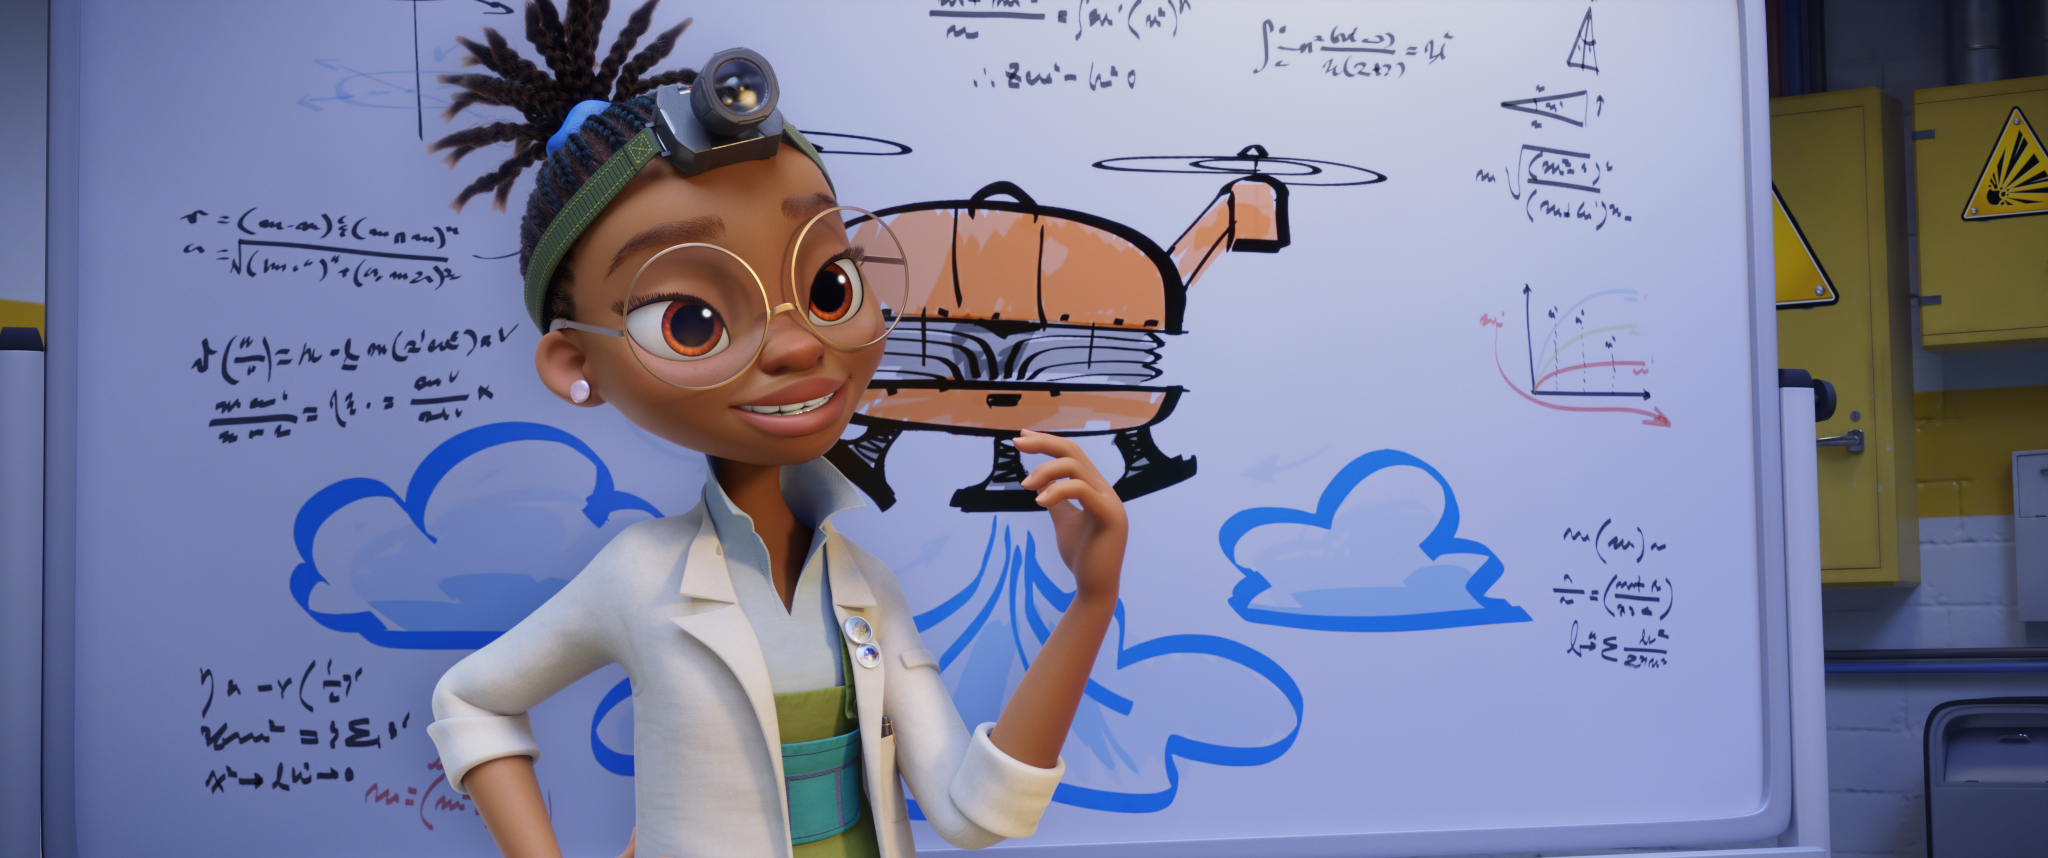 Kendra Wilson (voiced by Yara Shahidi) in PAW PATROL: THE MOVIE from Paramount Pictures. Photo Credit: Courtesy of Spin Master.